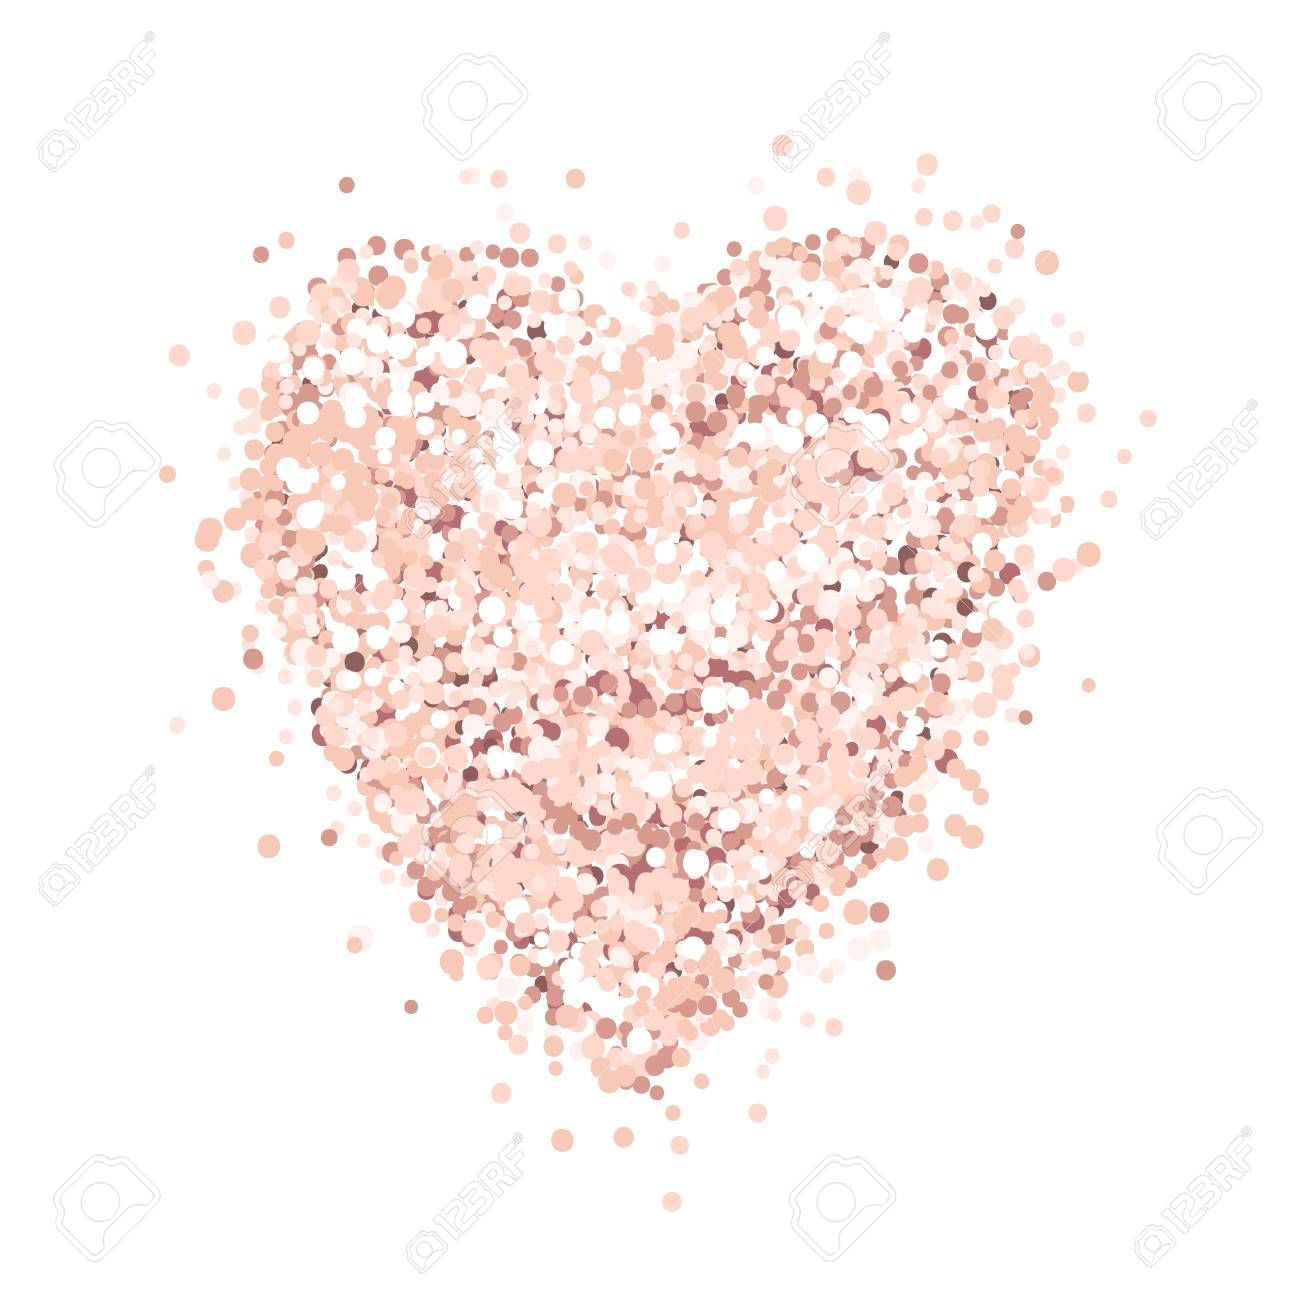 Heart Of Pink Gold Glitter On A White Background Template For Banner Card Save The Date Birthday Gold Glitter Background Pink And Gold Rose Gold Wallpaper